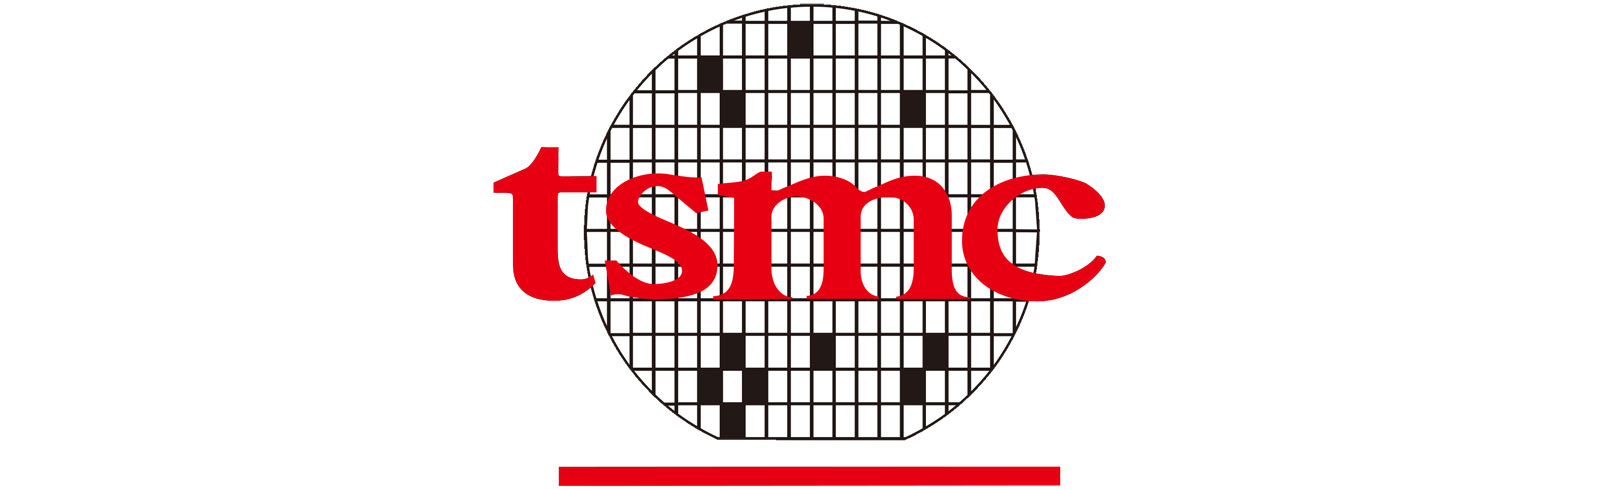 TSMC unveils its 6 nm process delivering 18% higher logic density over the N7 process